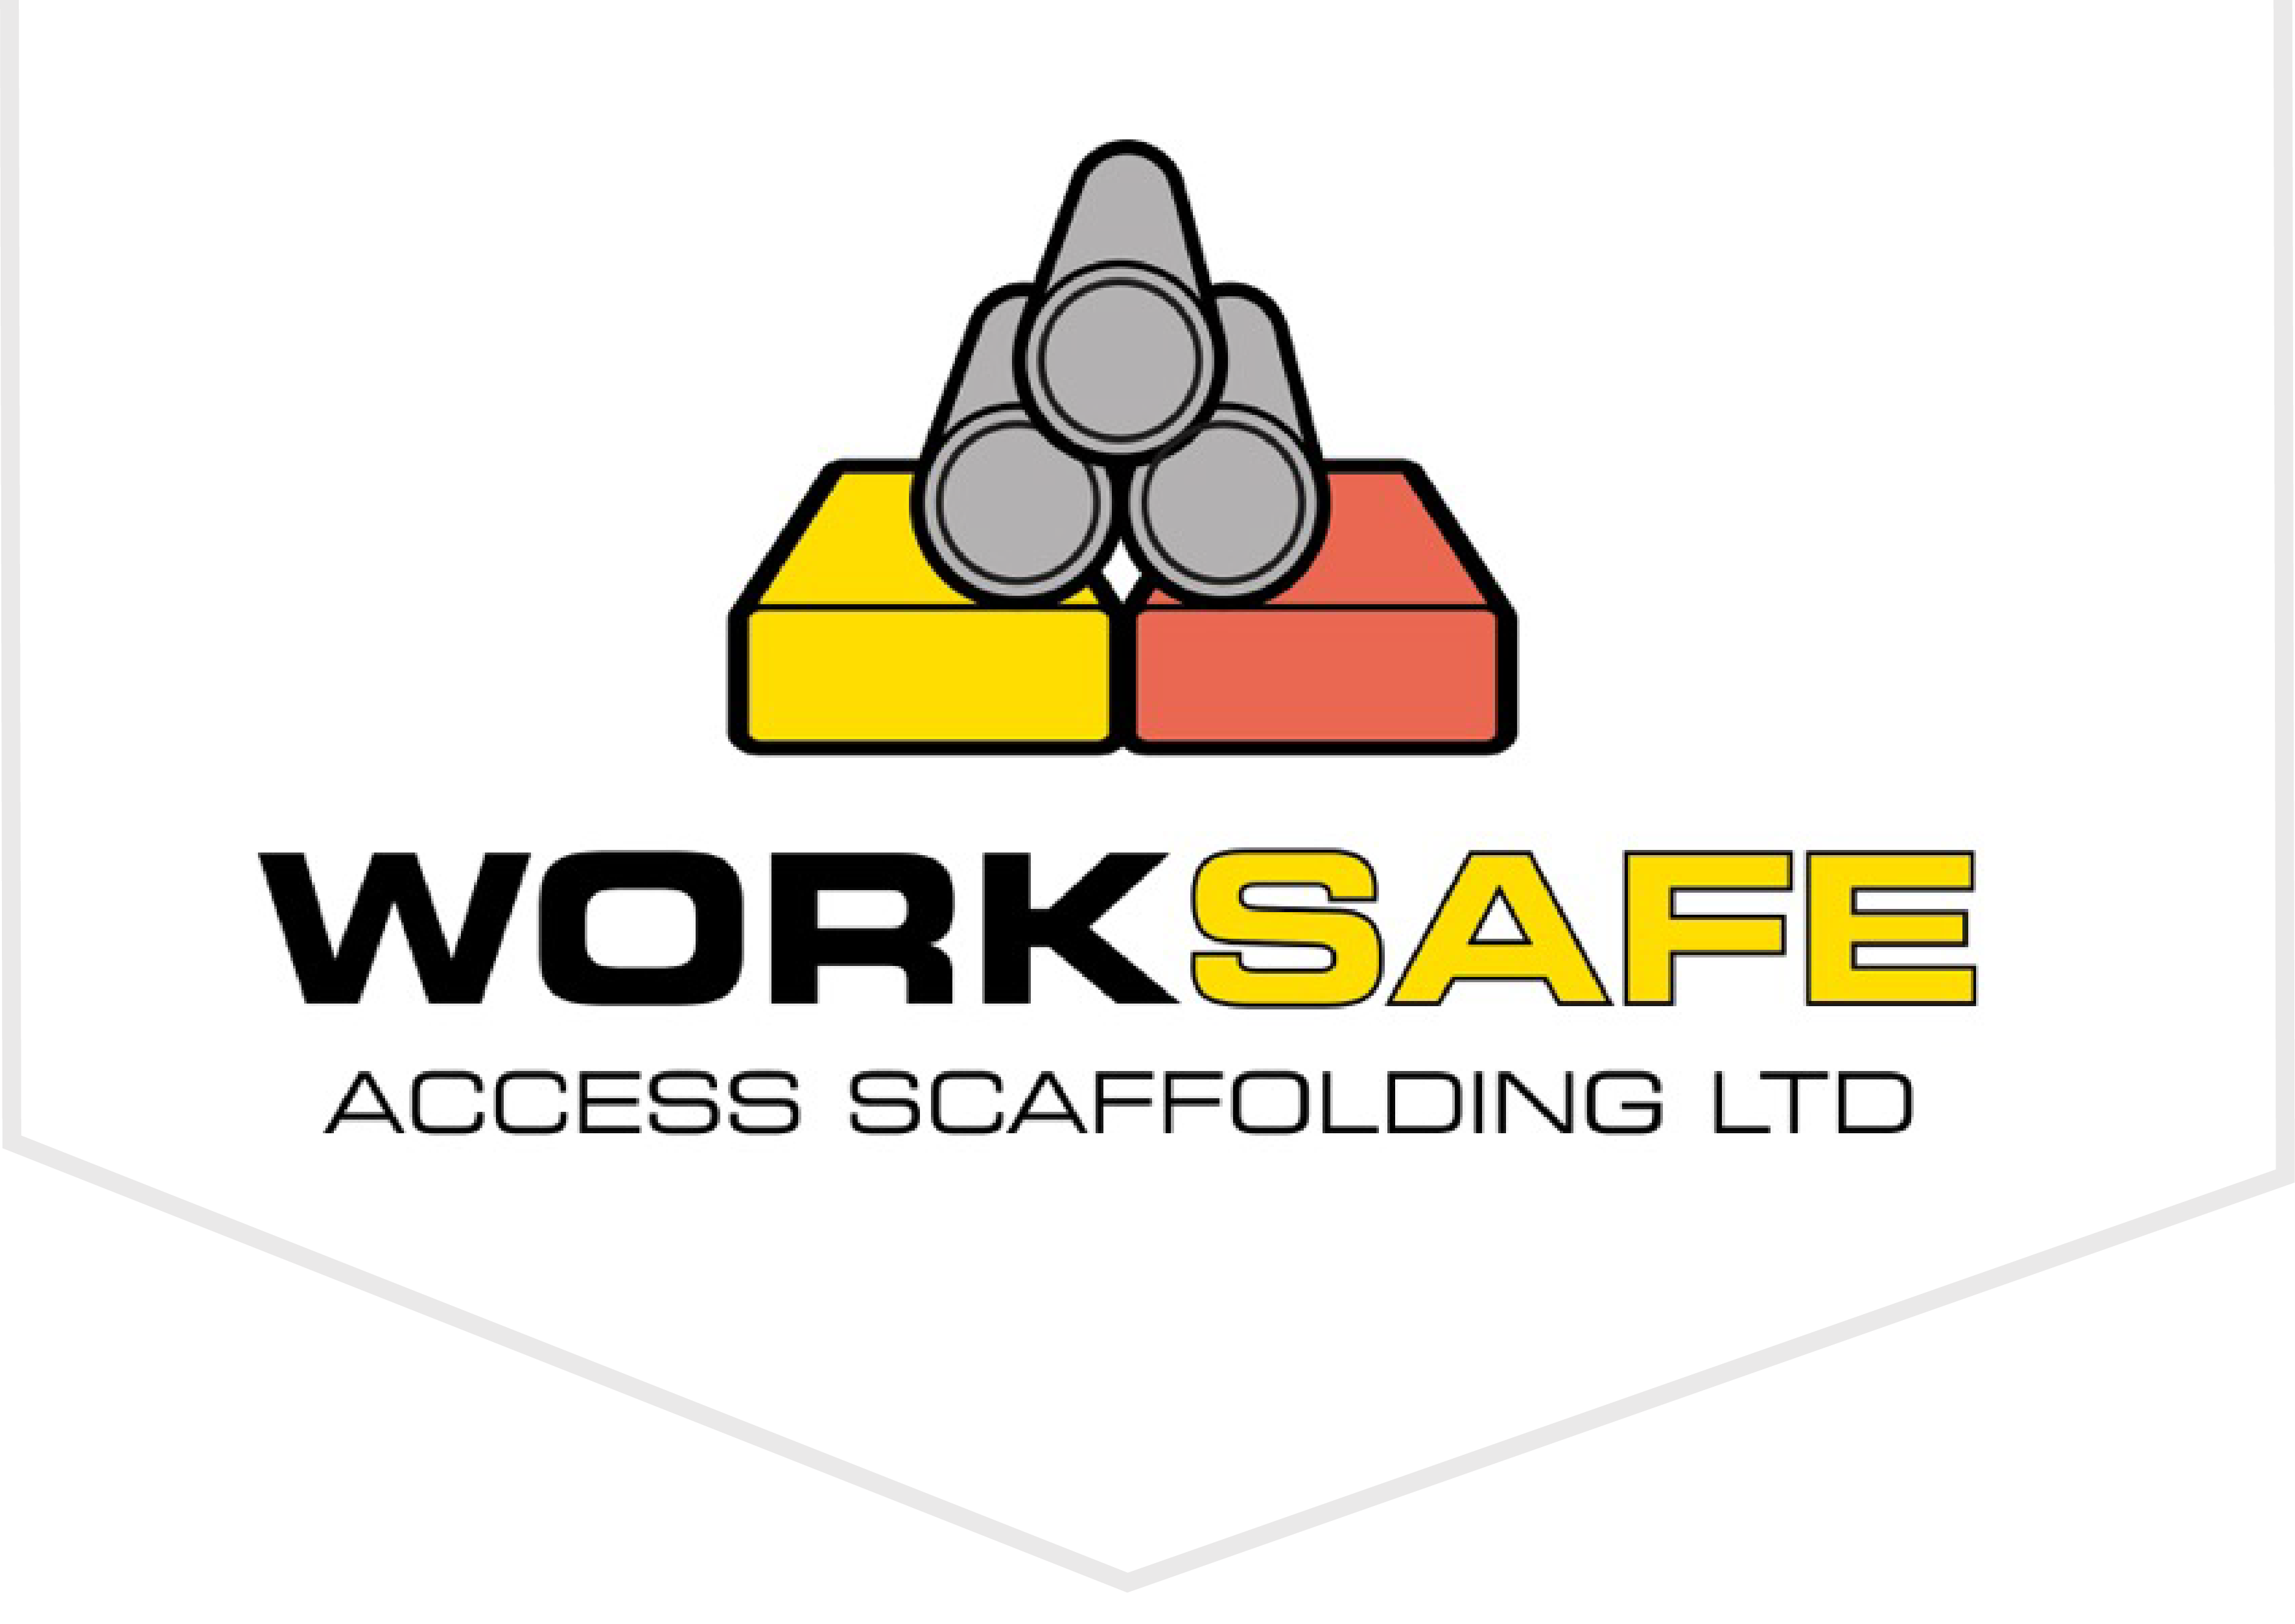 Worksafe Access Scaffolding Ltd